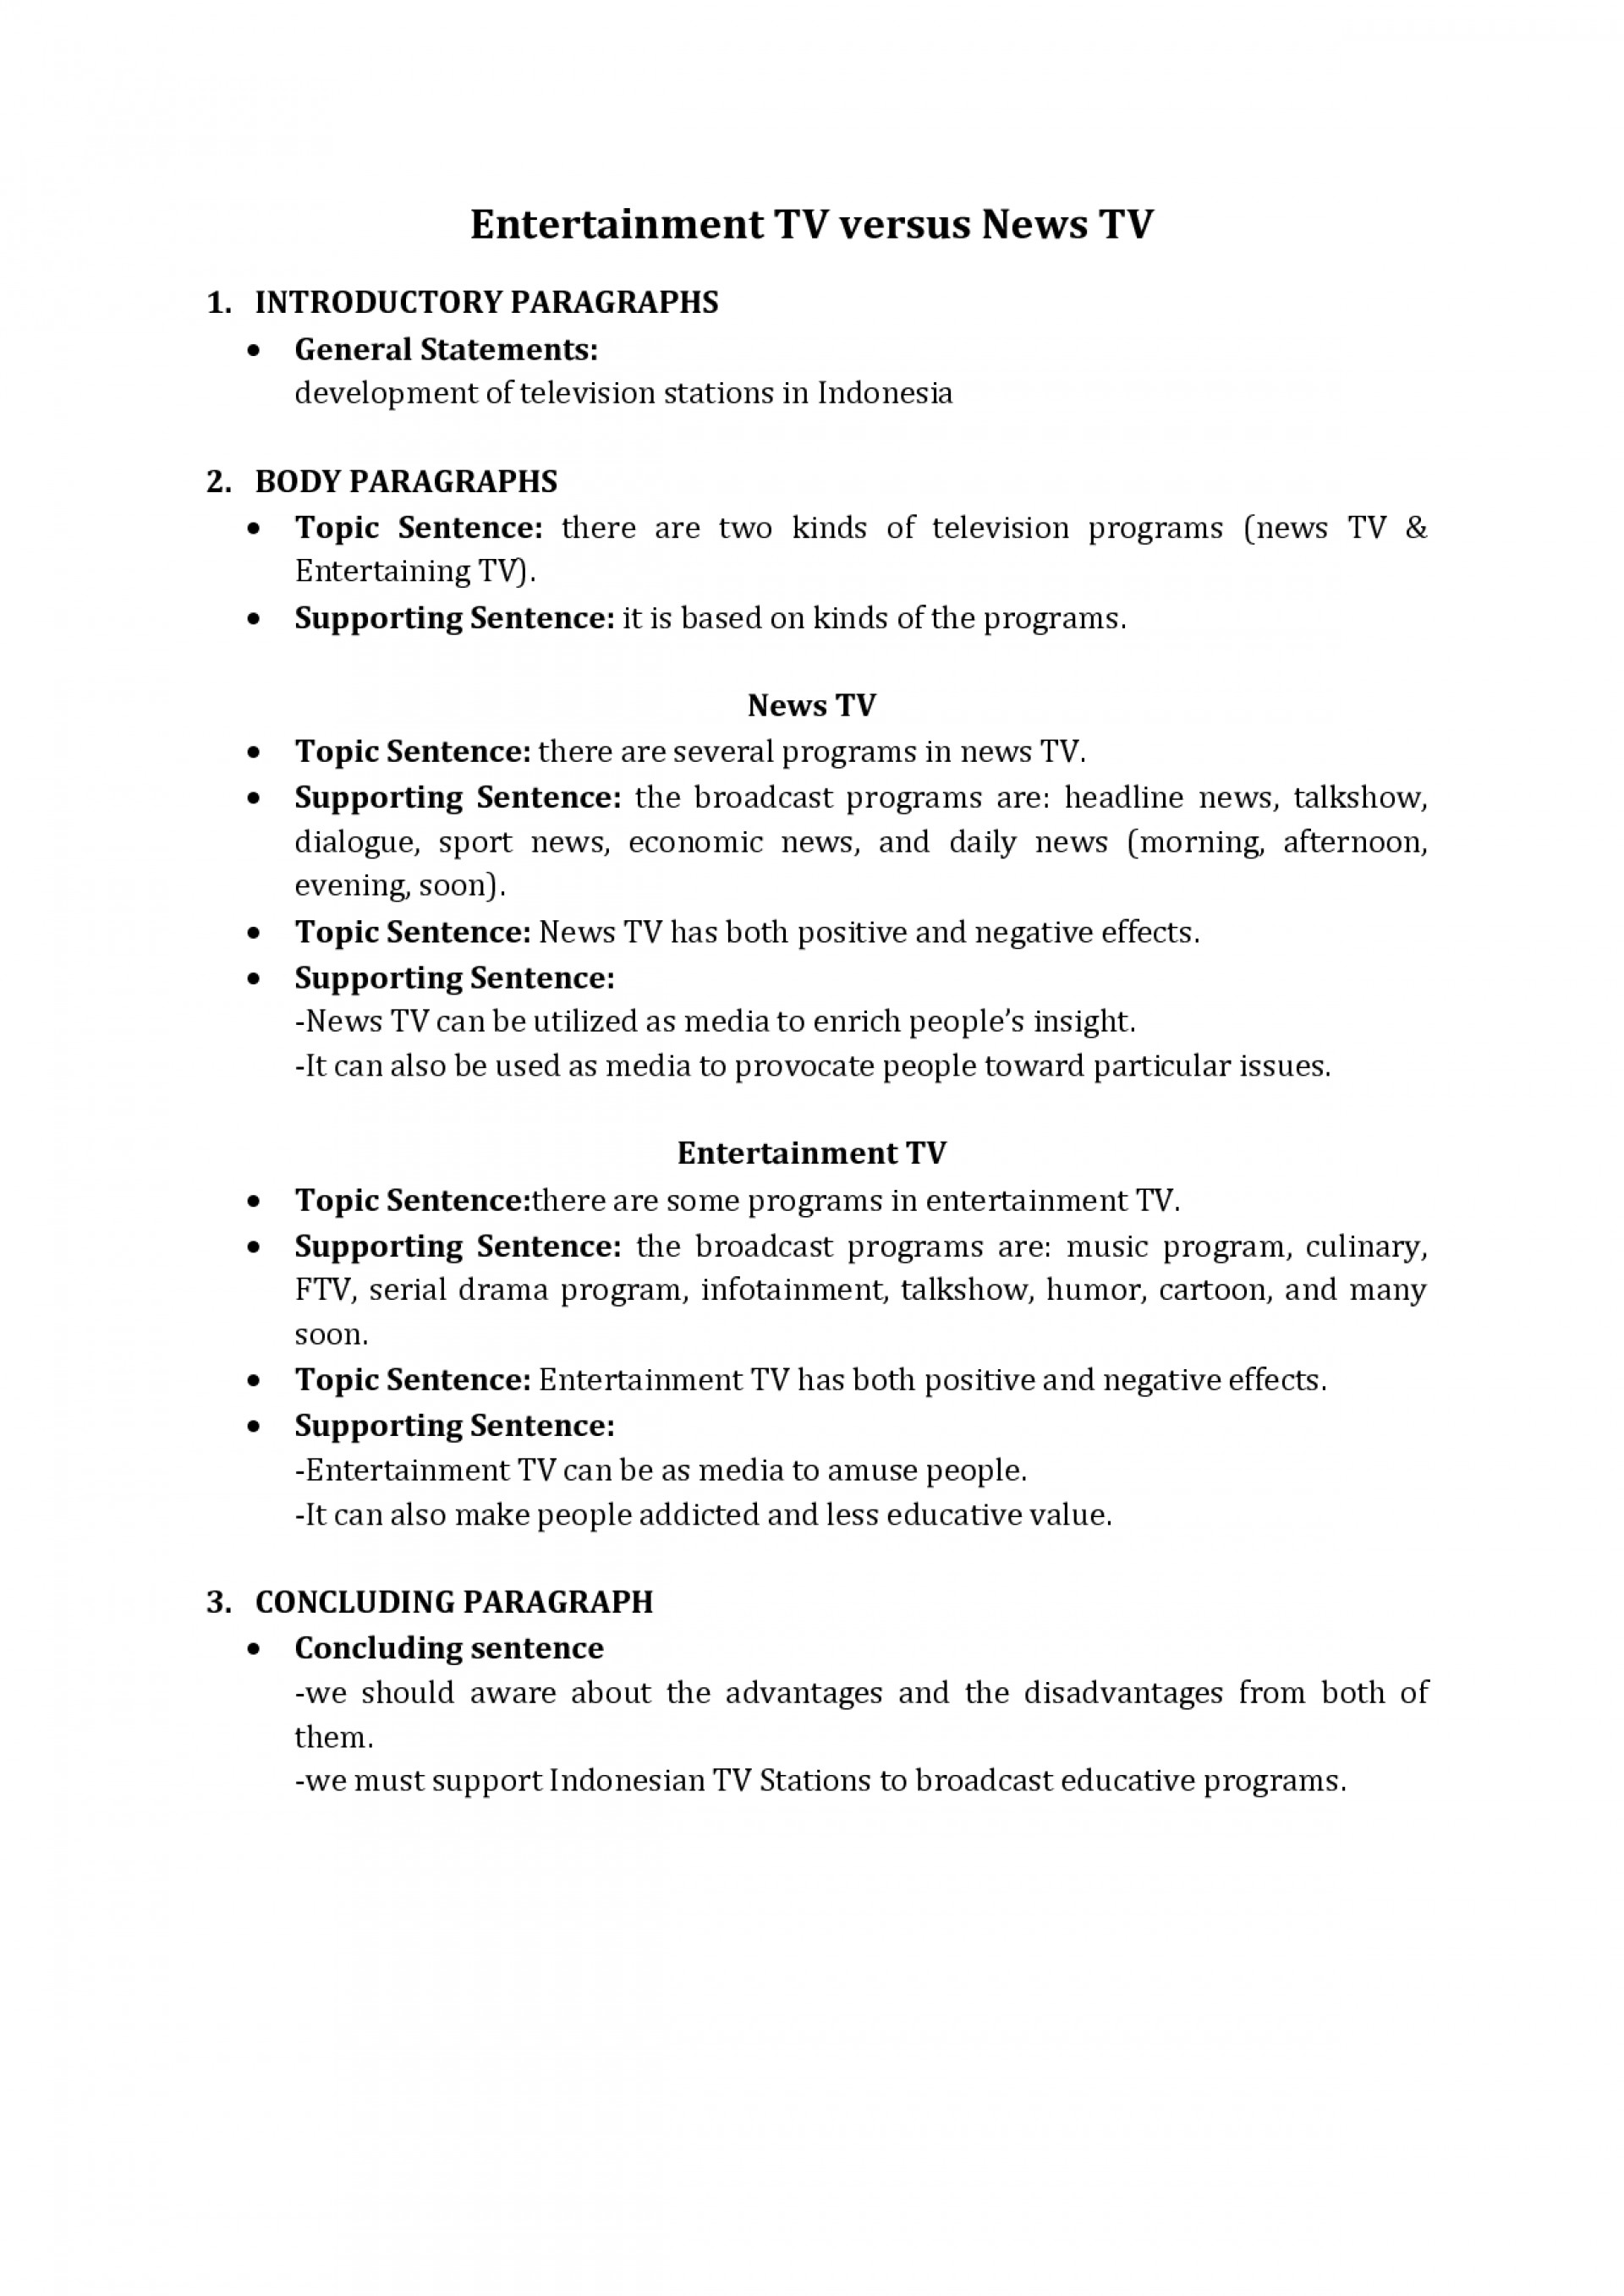 018 Fbunmxinib Outline To Essay Exceptional Format For Definition About Social Media Argumentative Middle School 1920